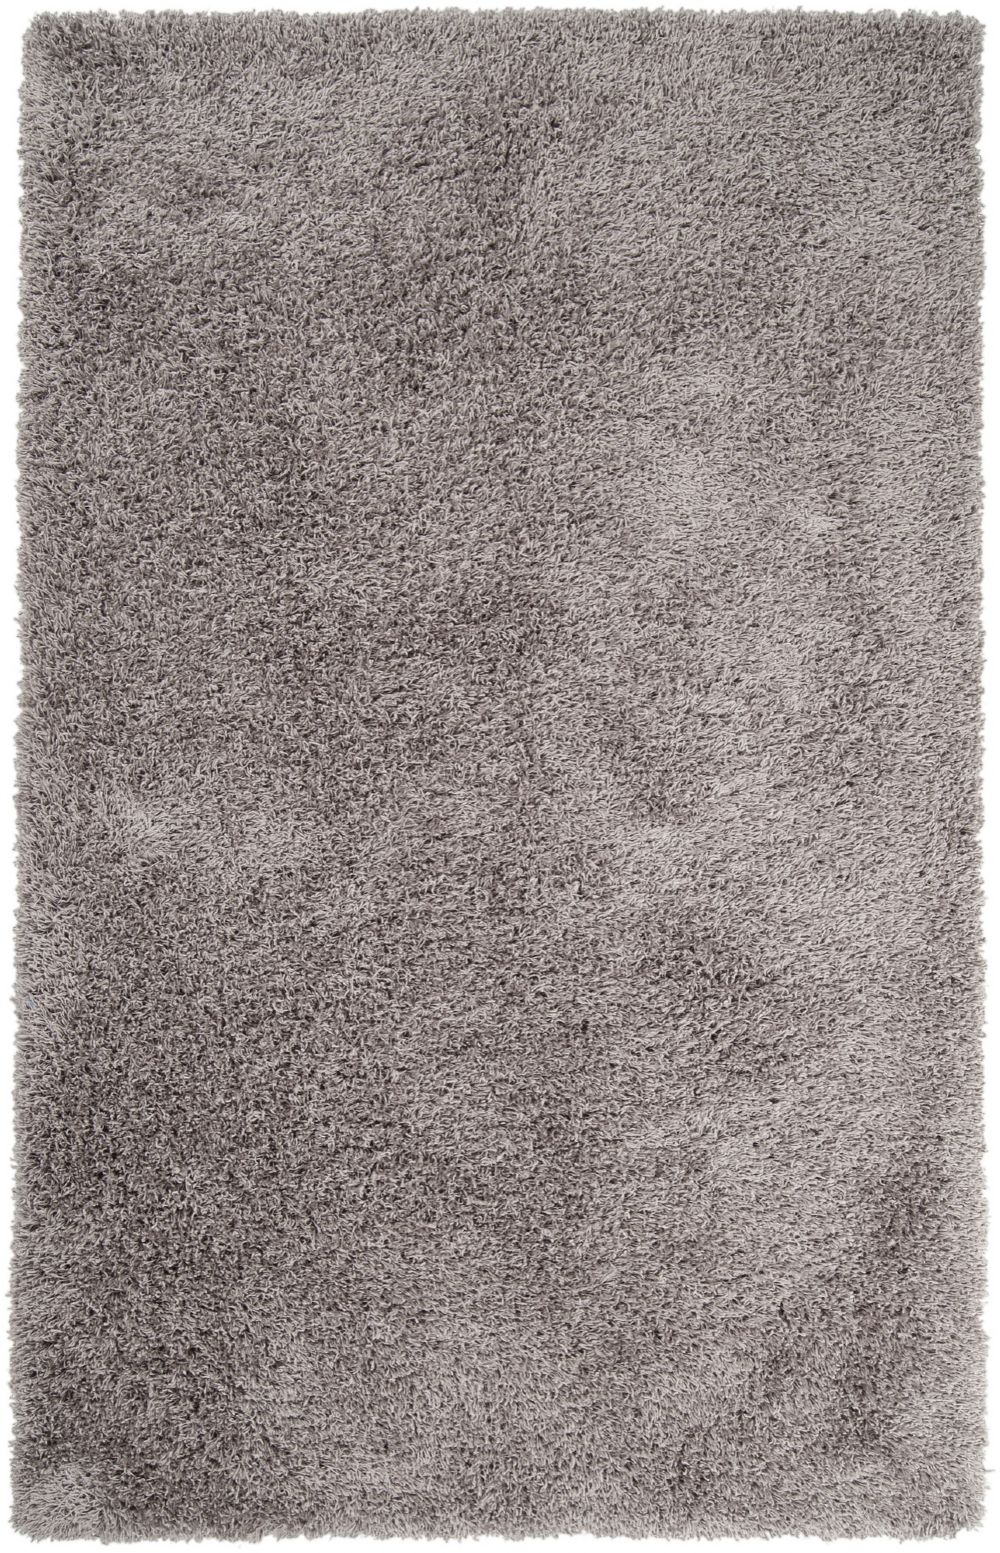 surya wilde shag area rug collection